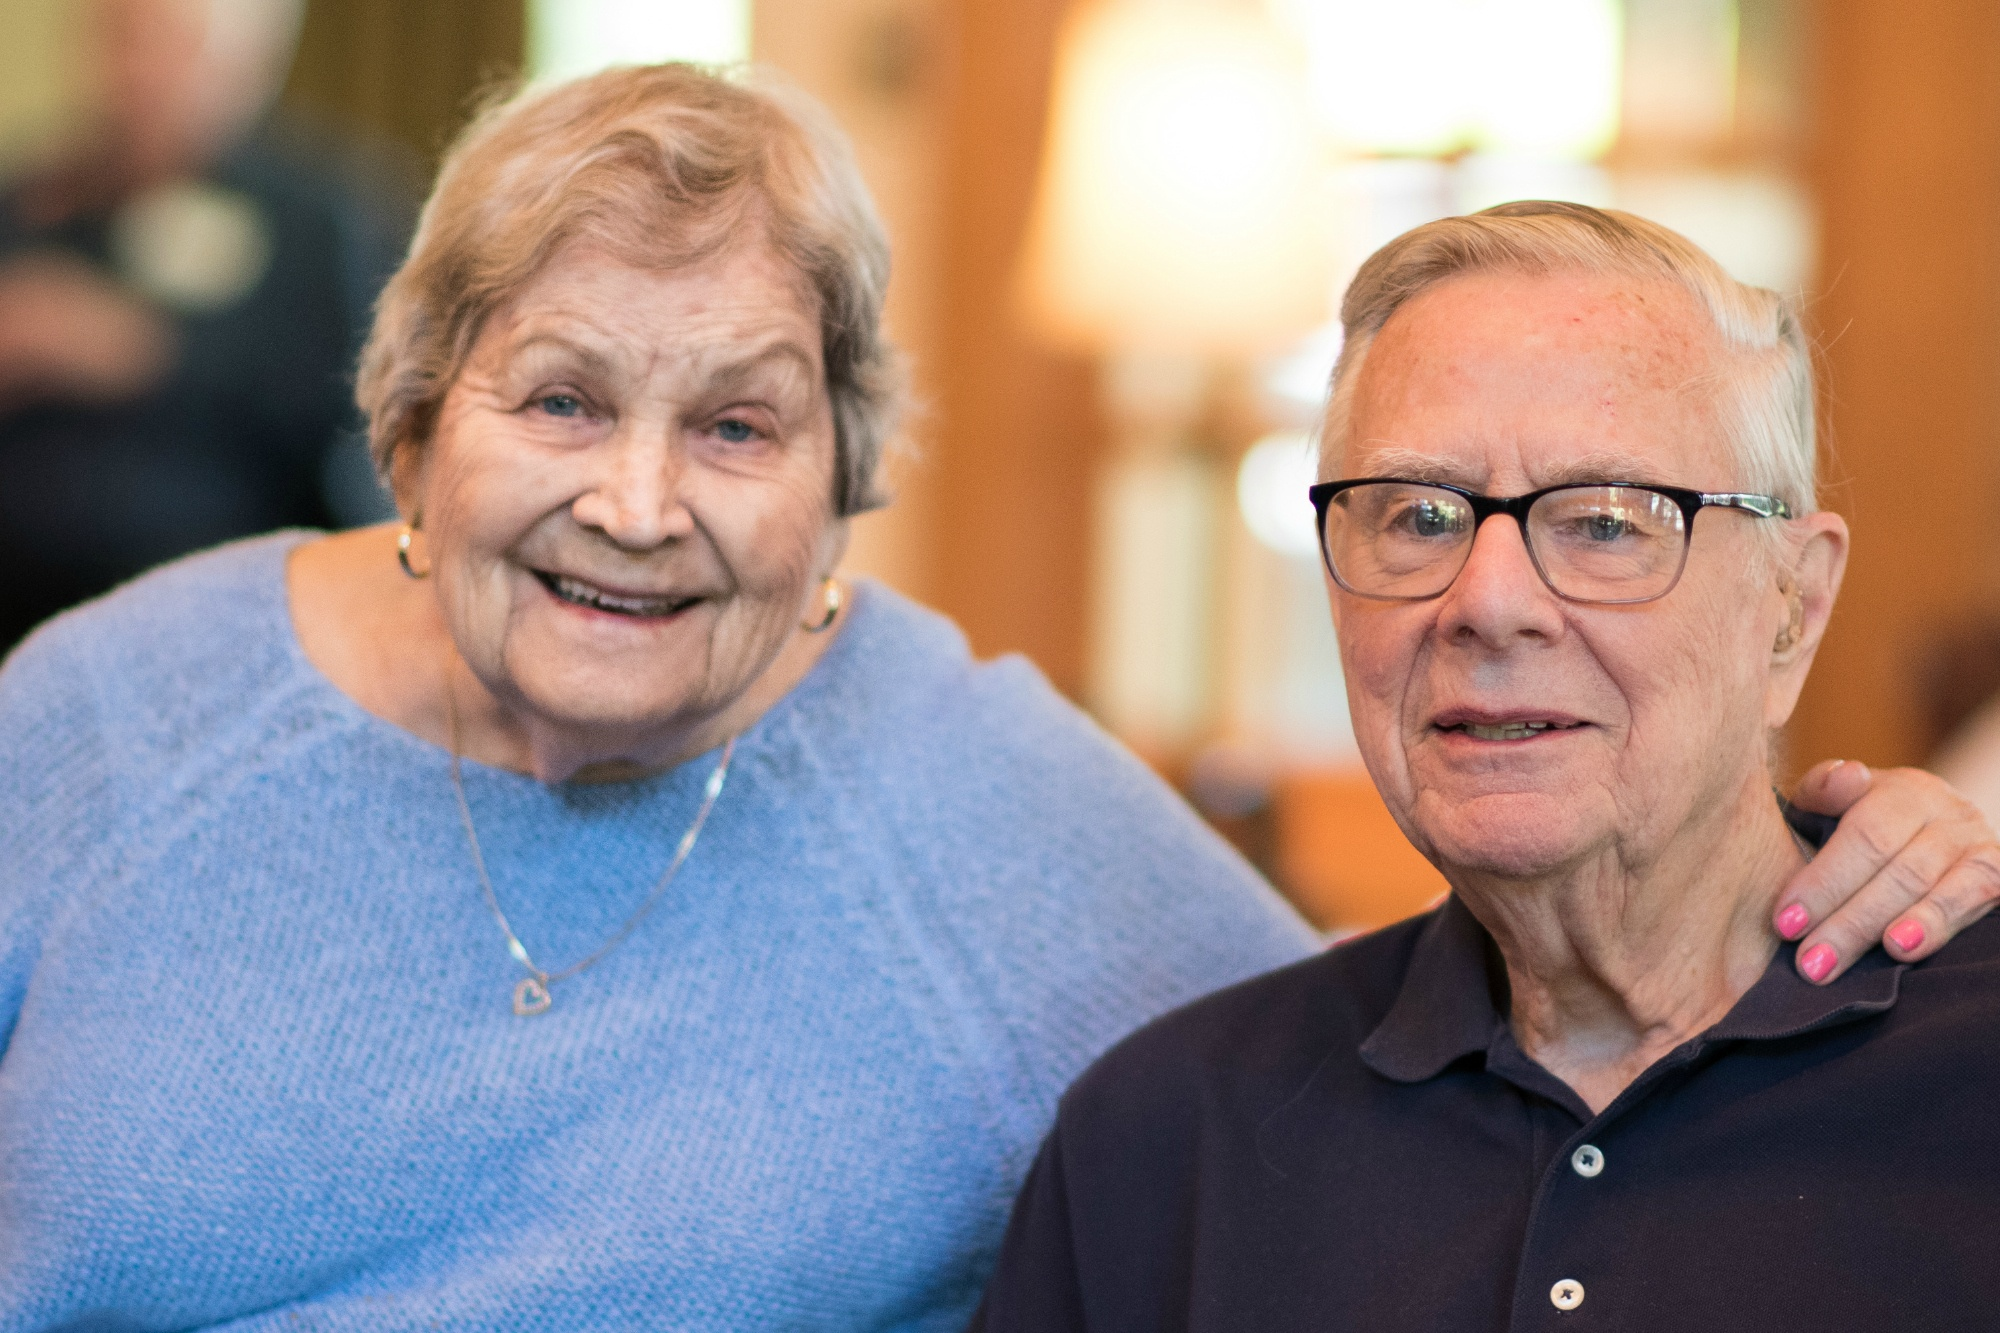 Enjoy spending time with friends old and new at our senior living community in Milwaukie, OR